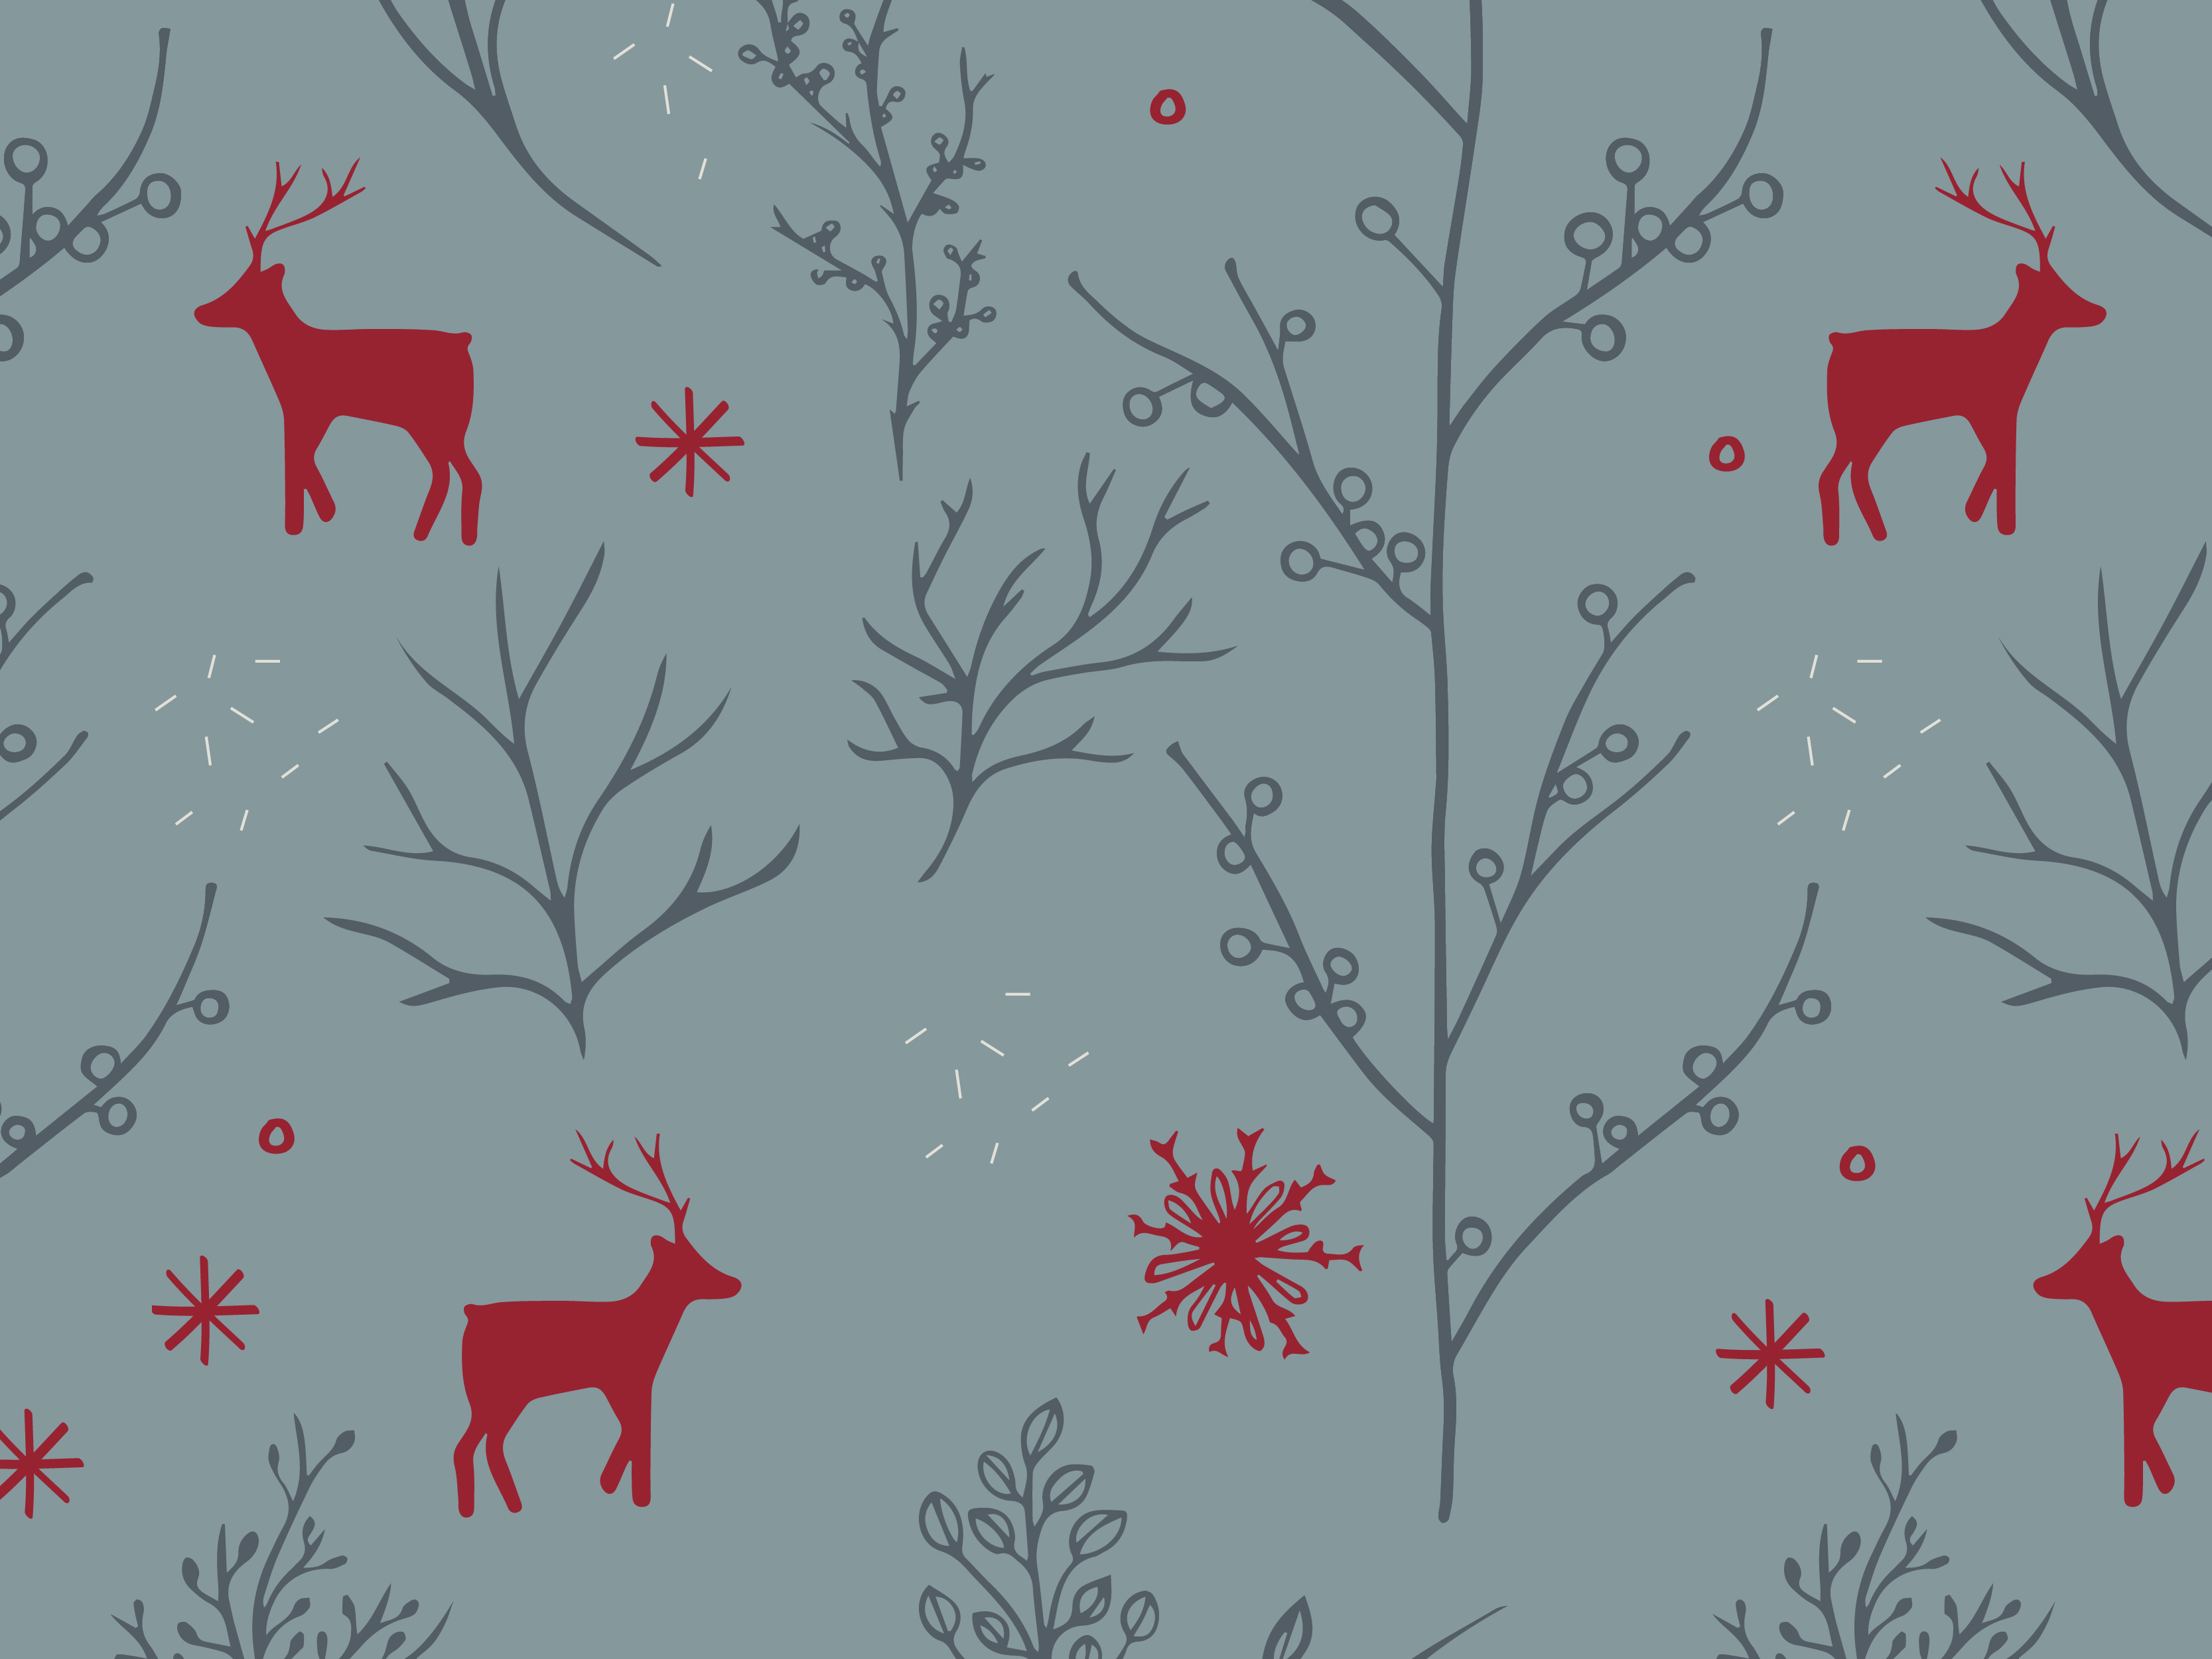 Winter pattern created for Brewpoint Coffee's Sugar Plum Dancer holiday blend.